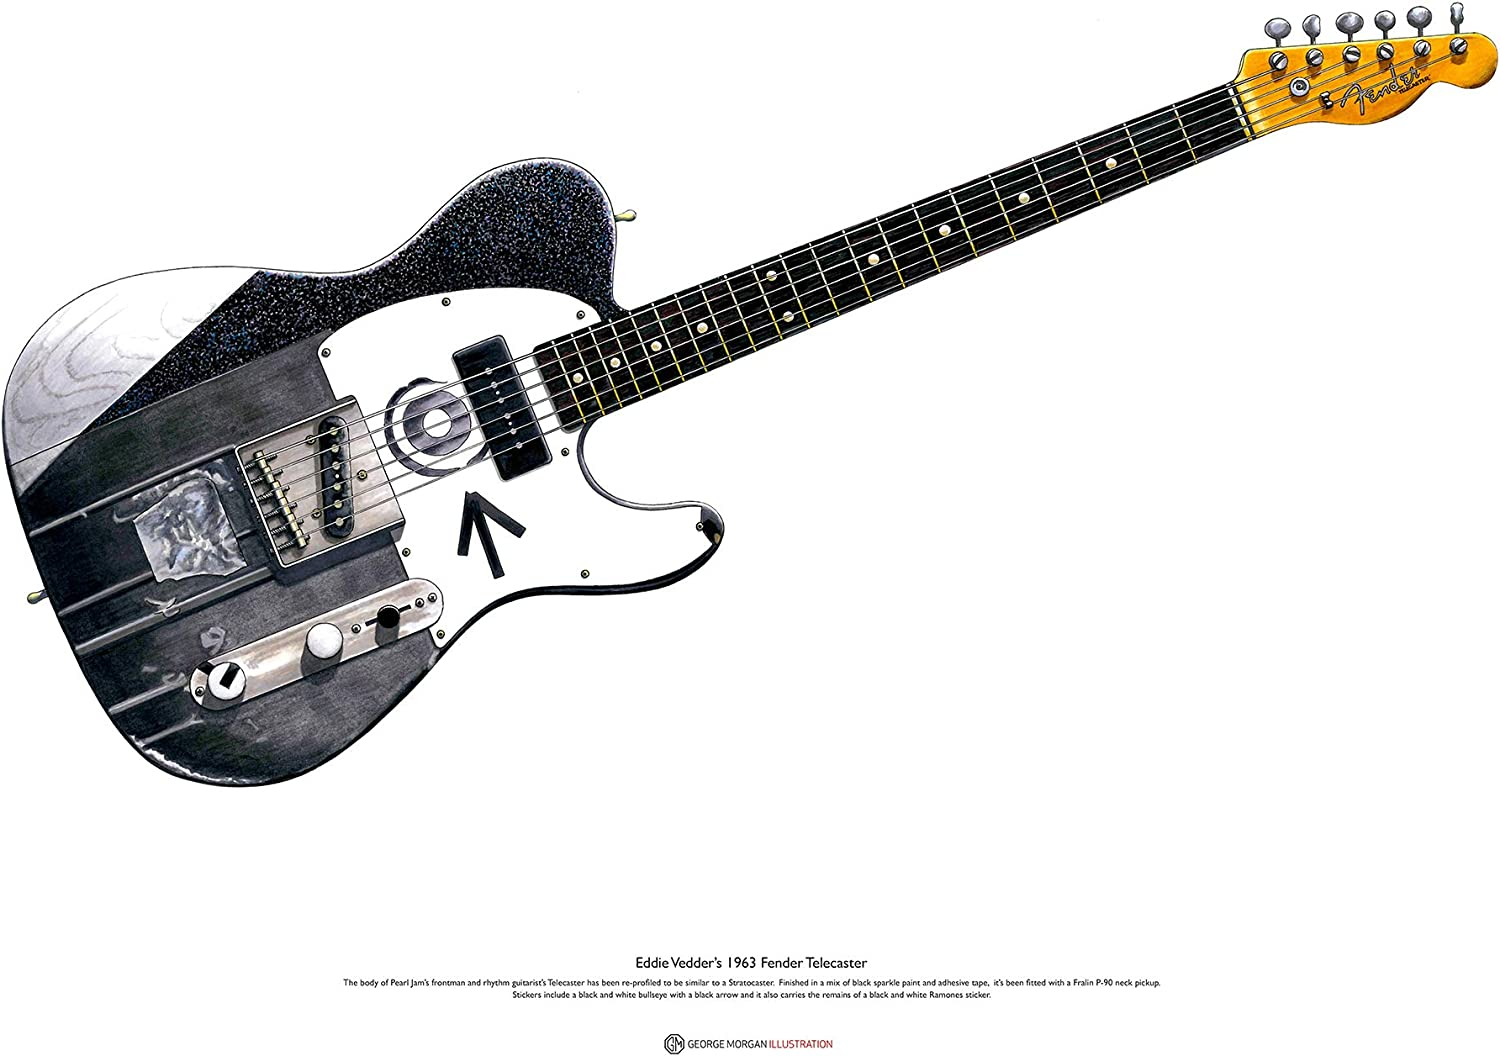 George Morgan Illustration Guitarra Telecaster Fender de Eddie ...